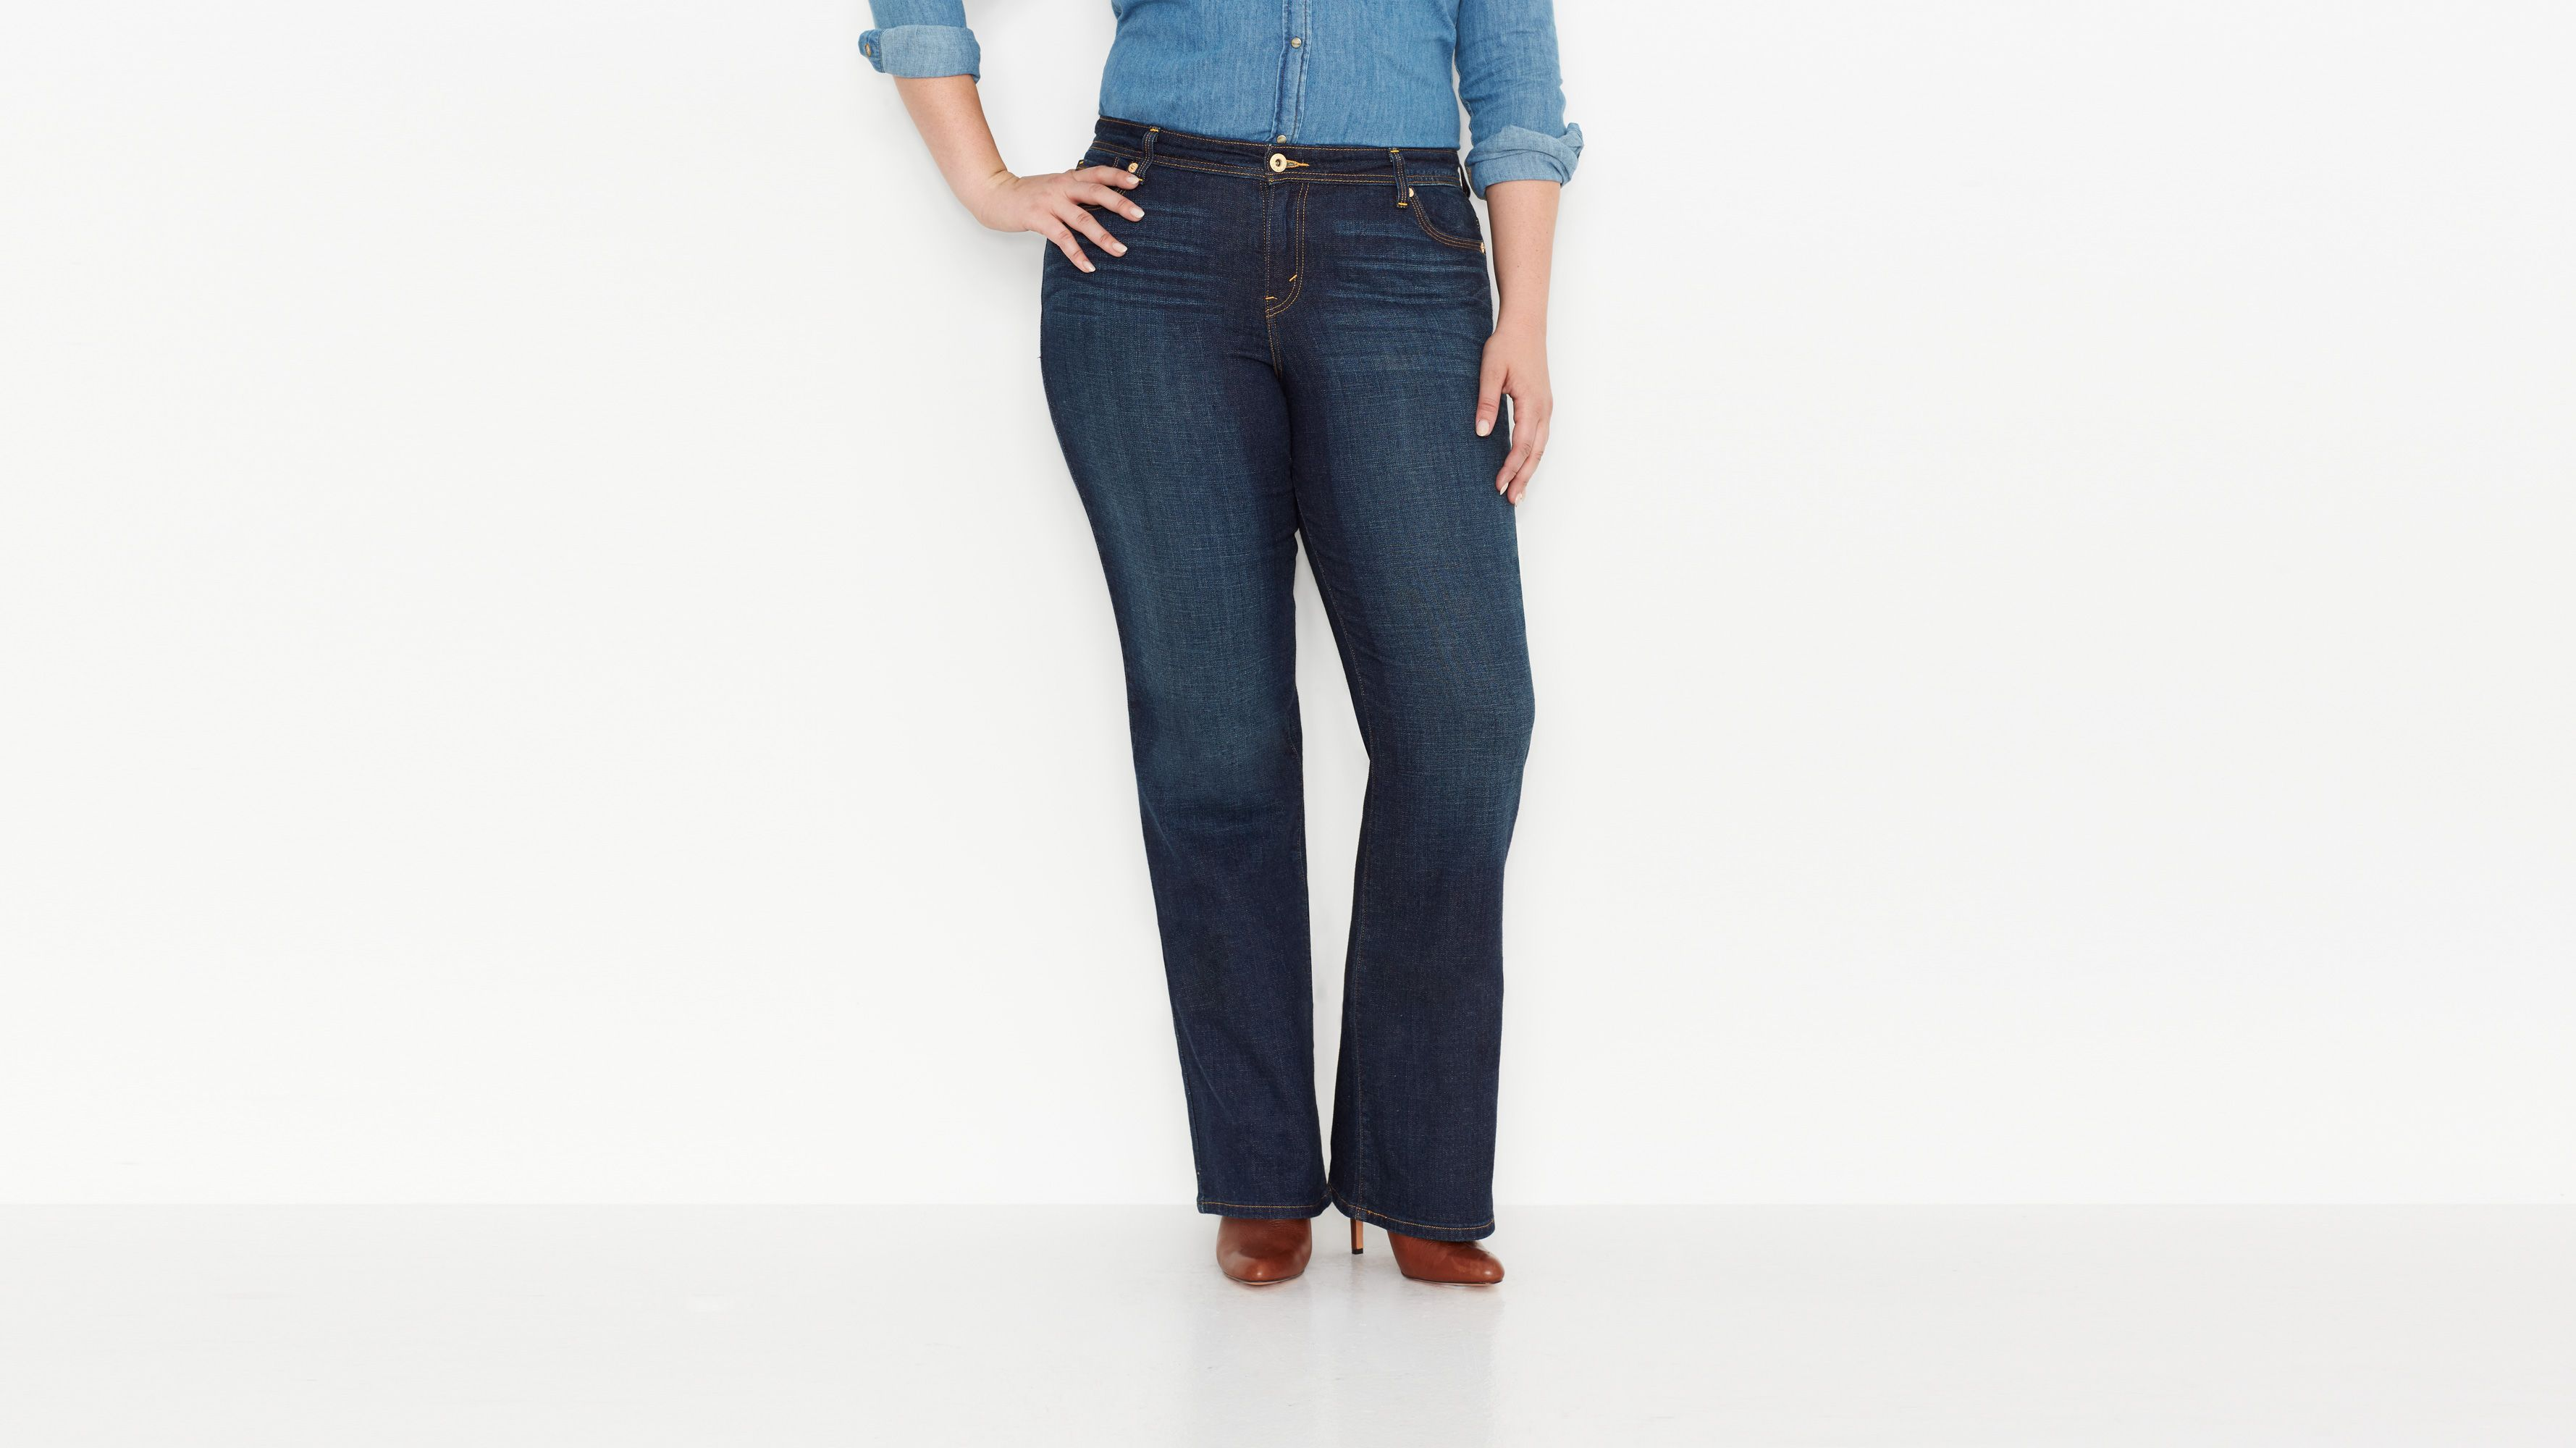 580™ Defined Contour Waist Boot Cut Jeans (Plus) - Winding Road